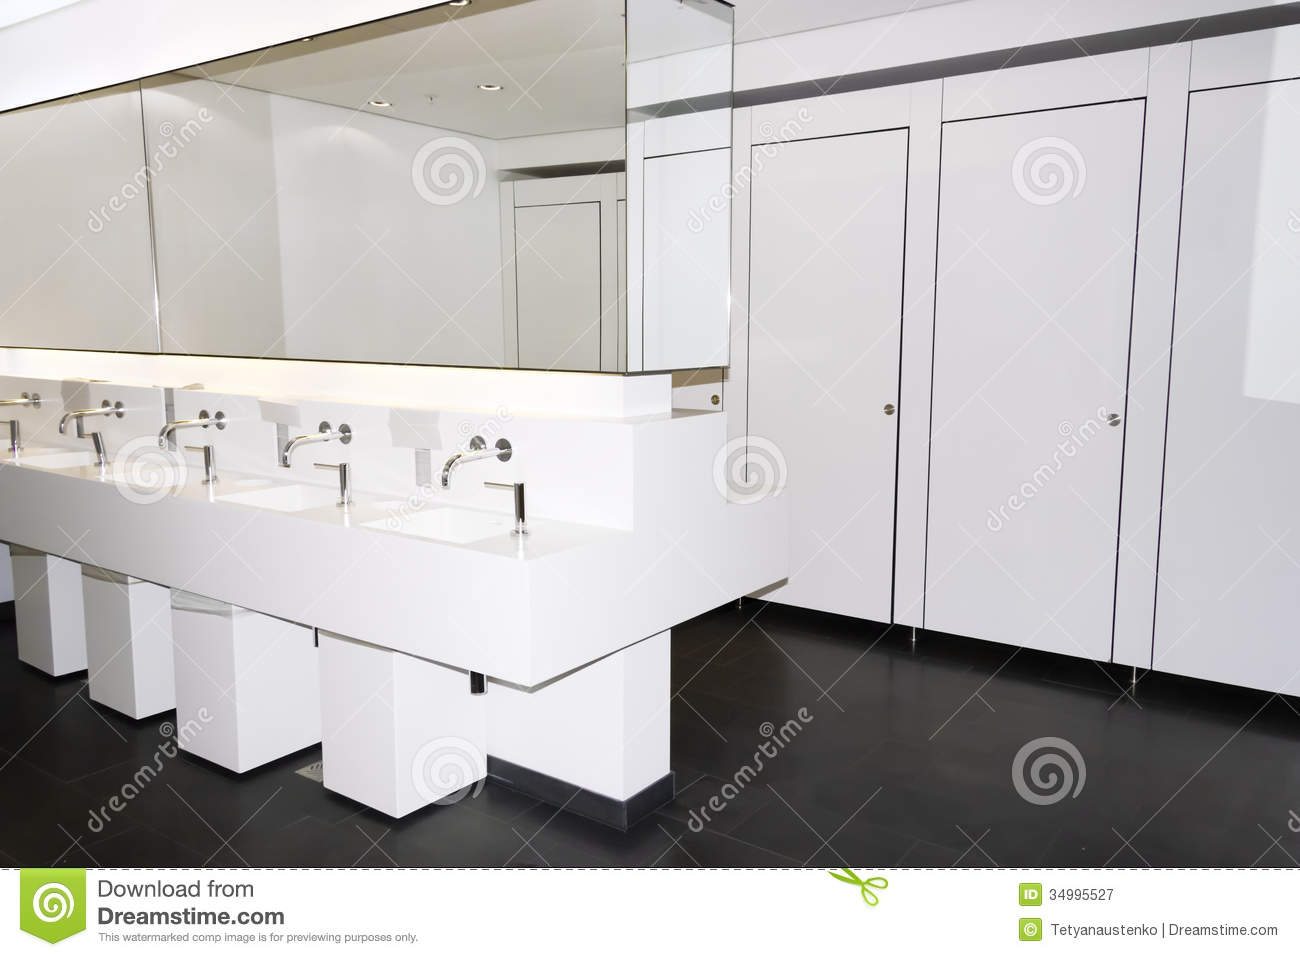 Modern Public Restroom With Mirrors And Washbasins